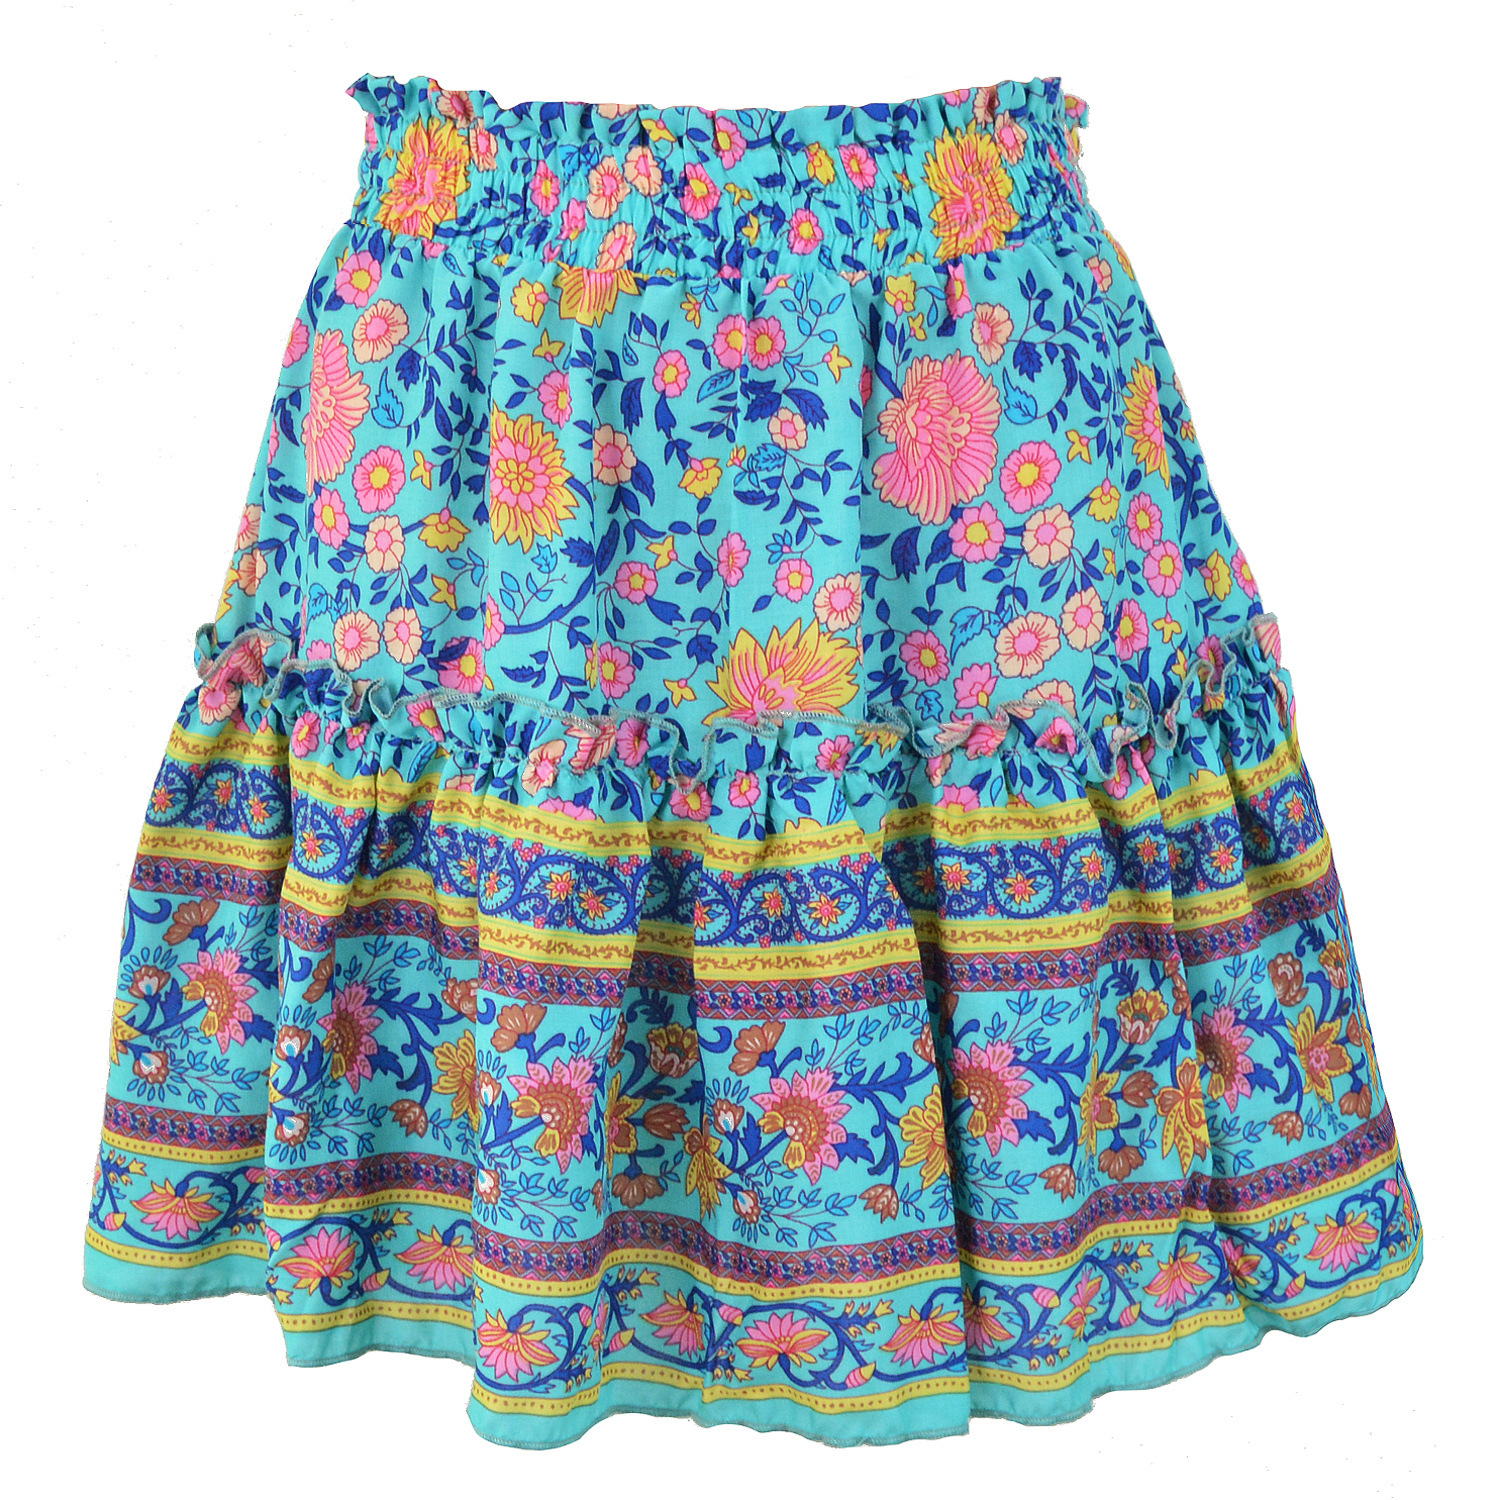 Women Bohemian Beach Style Skirt Ladies A-Line Above Knee Mini Empire Ruffles Vintage Floral Print Skirts